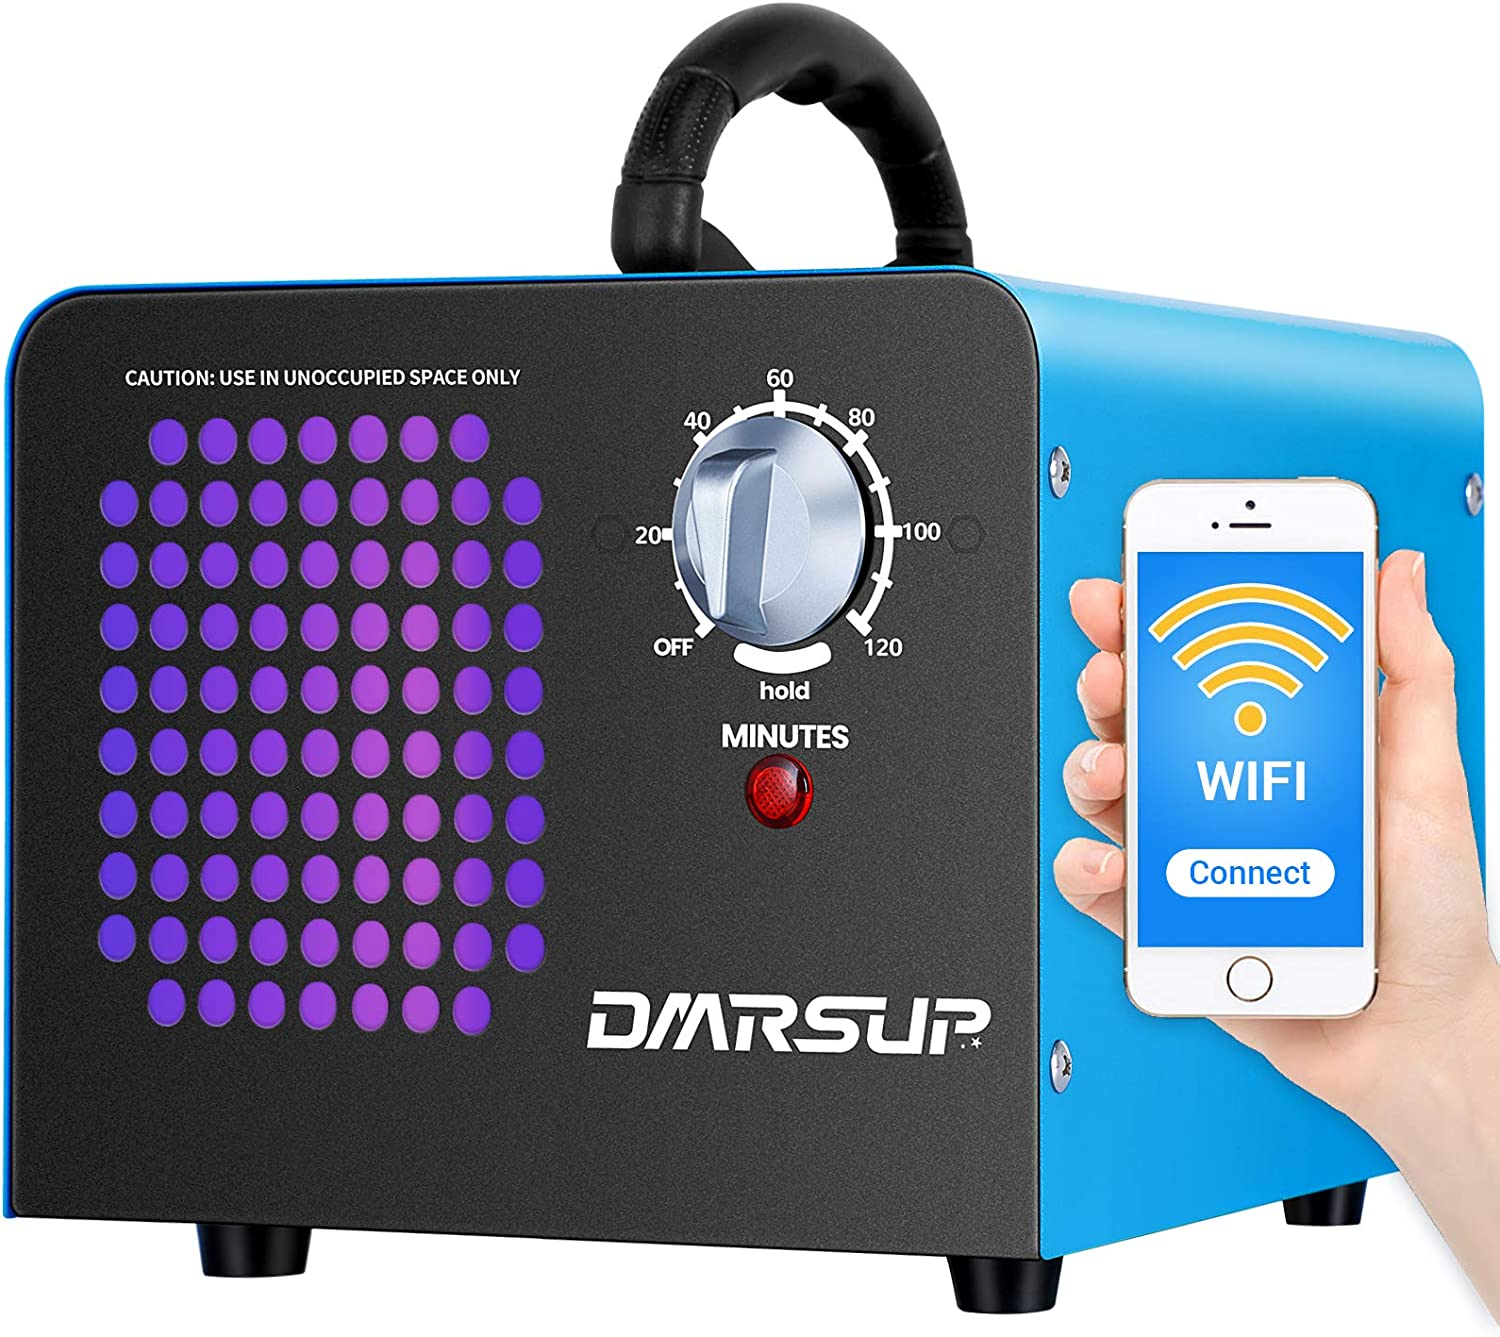 DMRSUP Commercial Ozone Generator 2.0 APP Control 11000 mg/h Air Purifier Ionizer - Ozone Machine for Home, Cars, Pets, Smoke, Blue